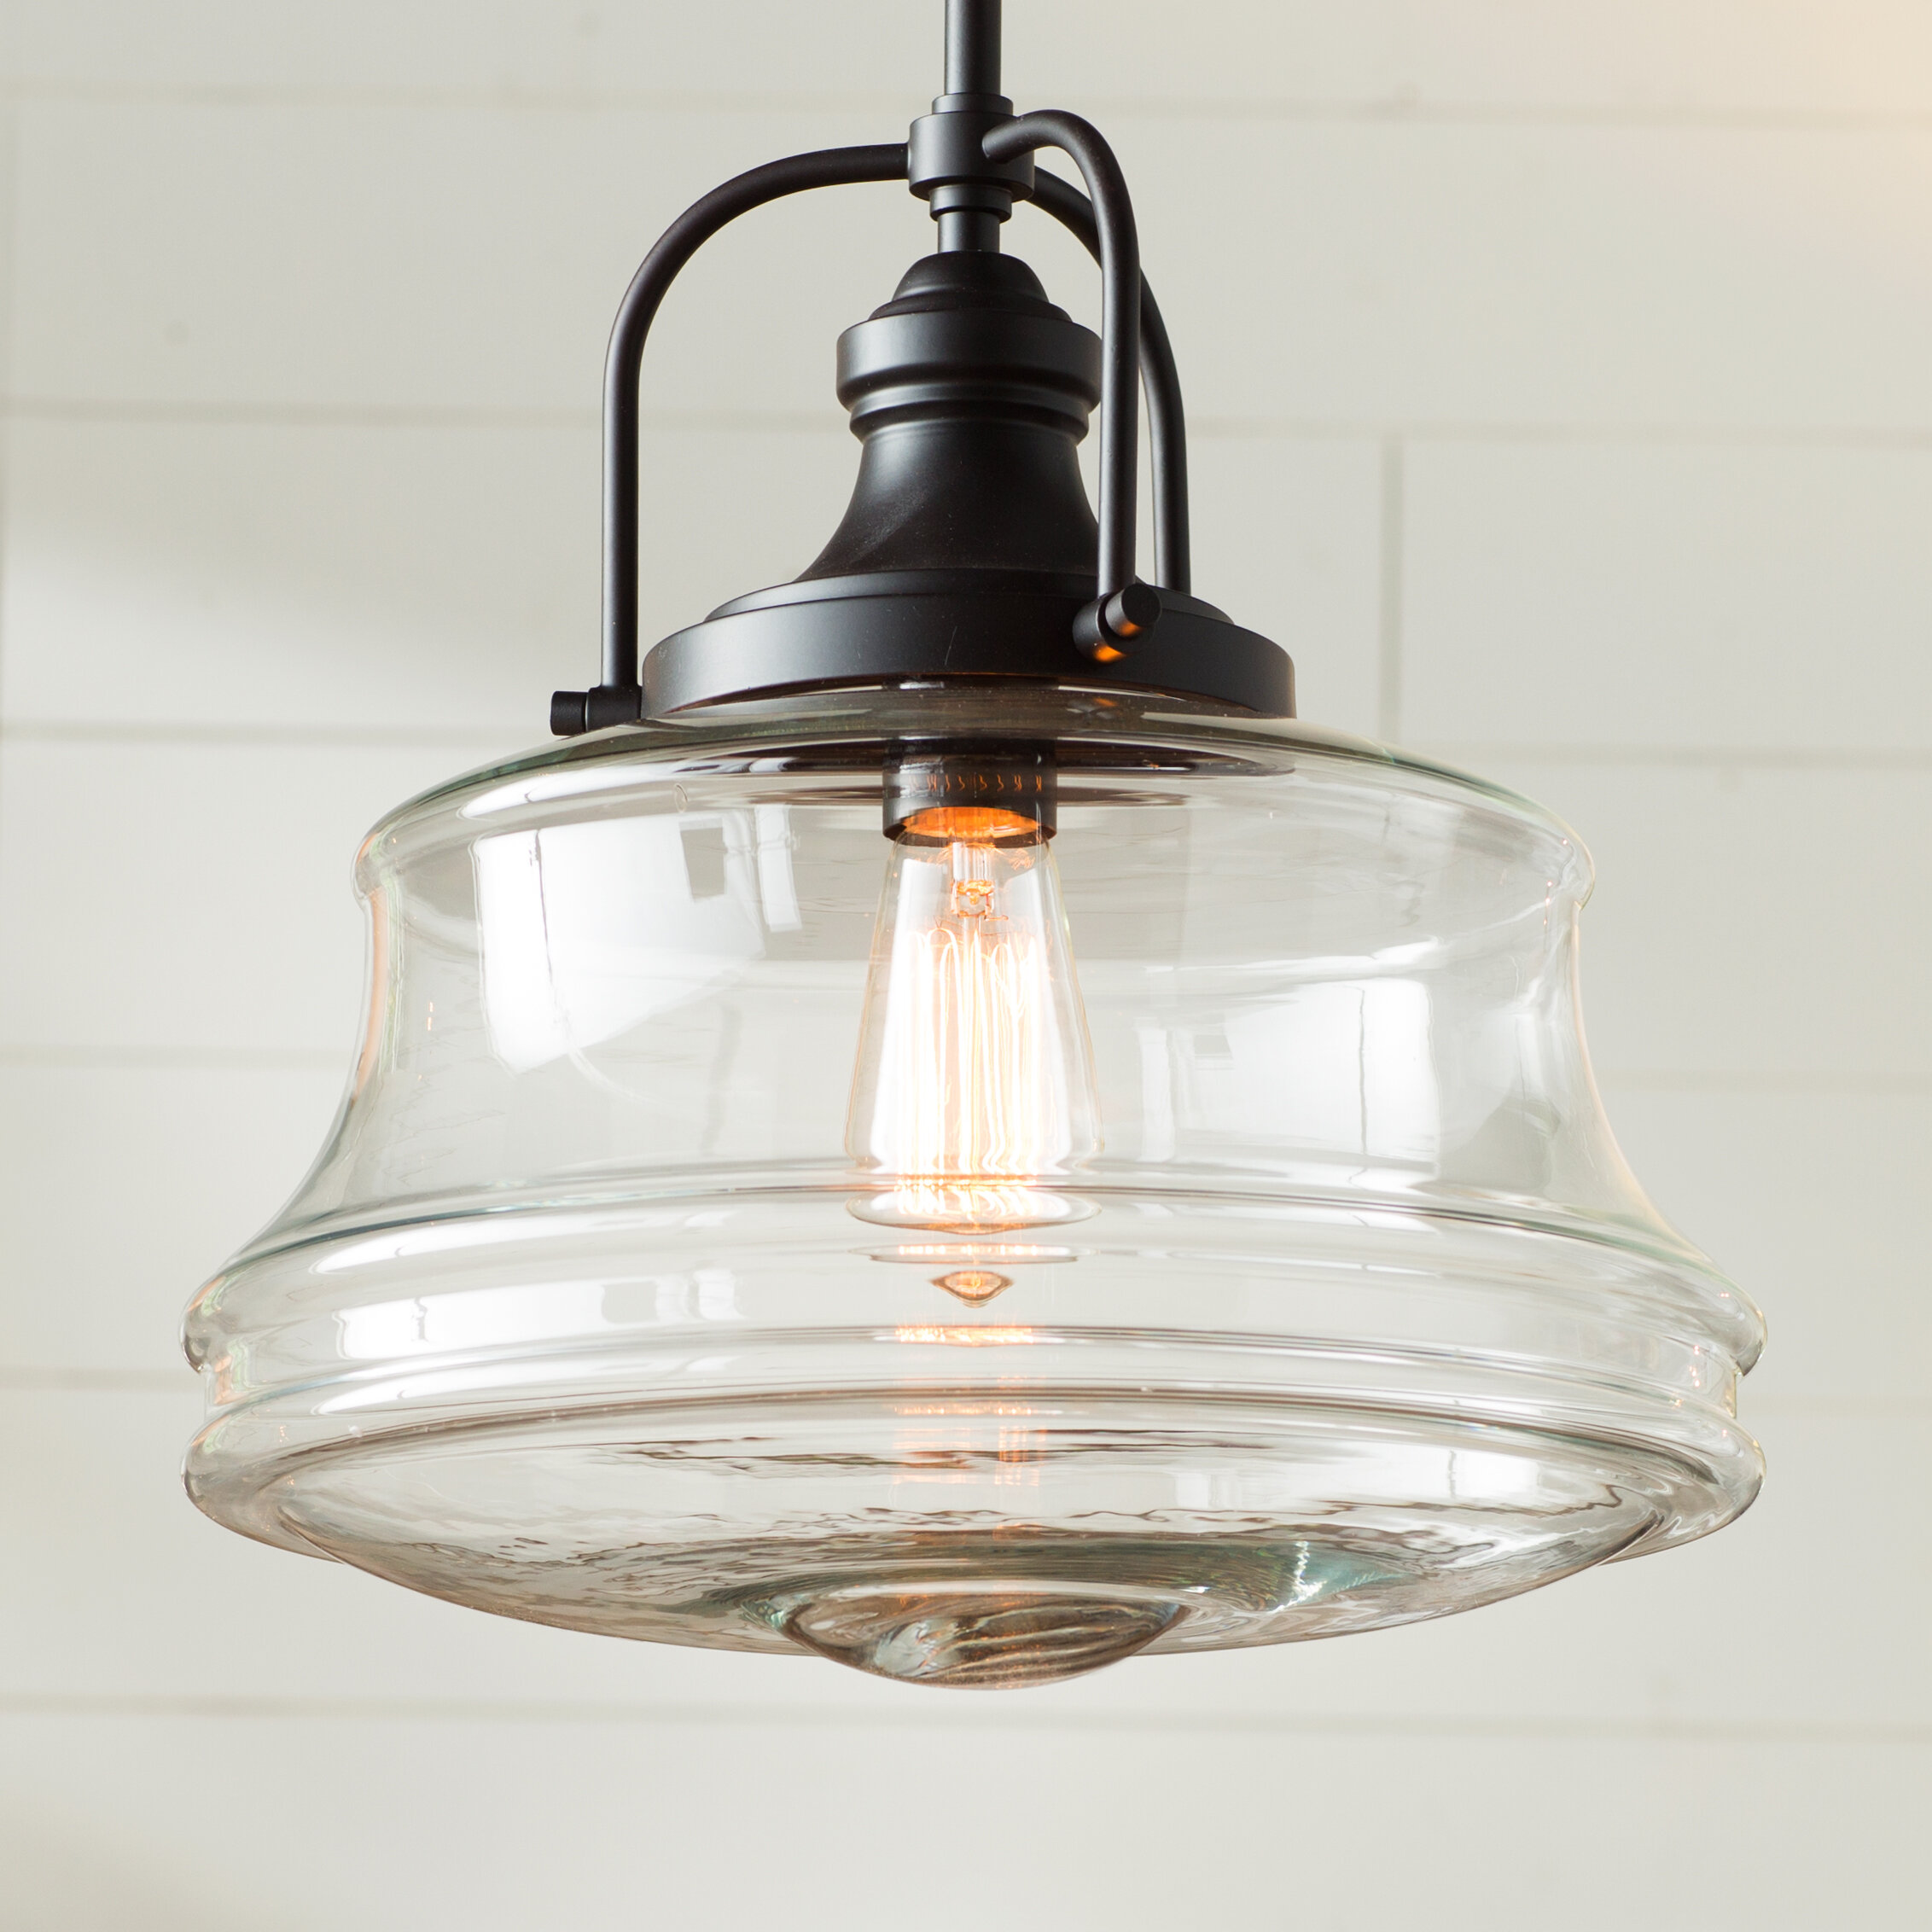 Laurel Foundry Modern Farmhouse Nadine 1 Light Schoolhouse Pendant Reviews Wayfair